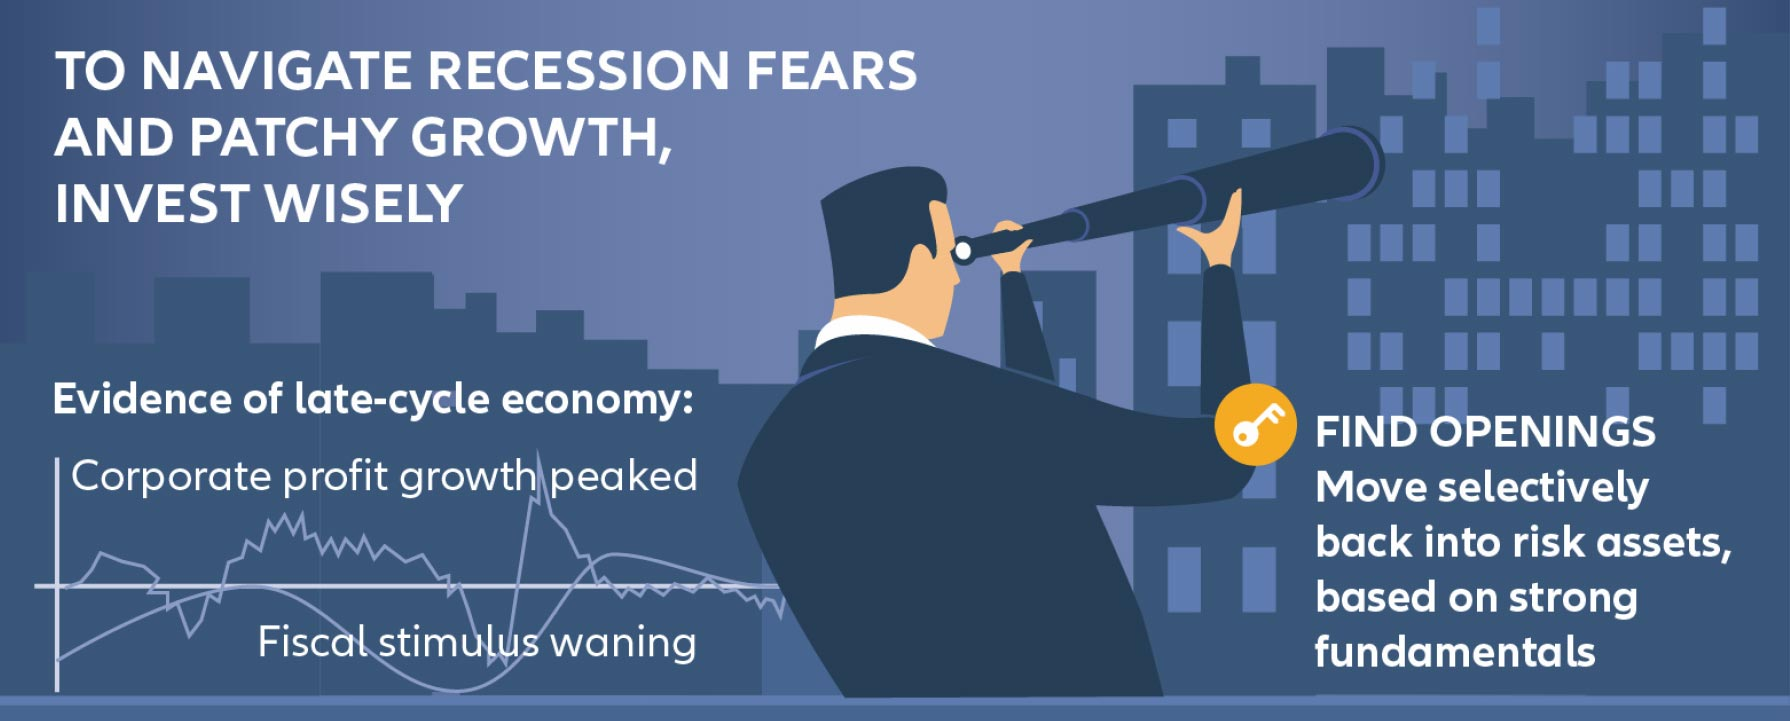 To Navigate recession Fears and patchy Growth, invest wisely